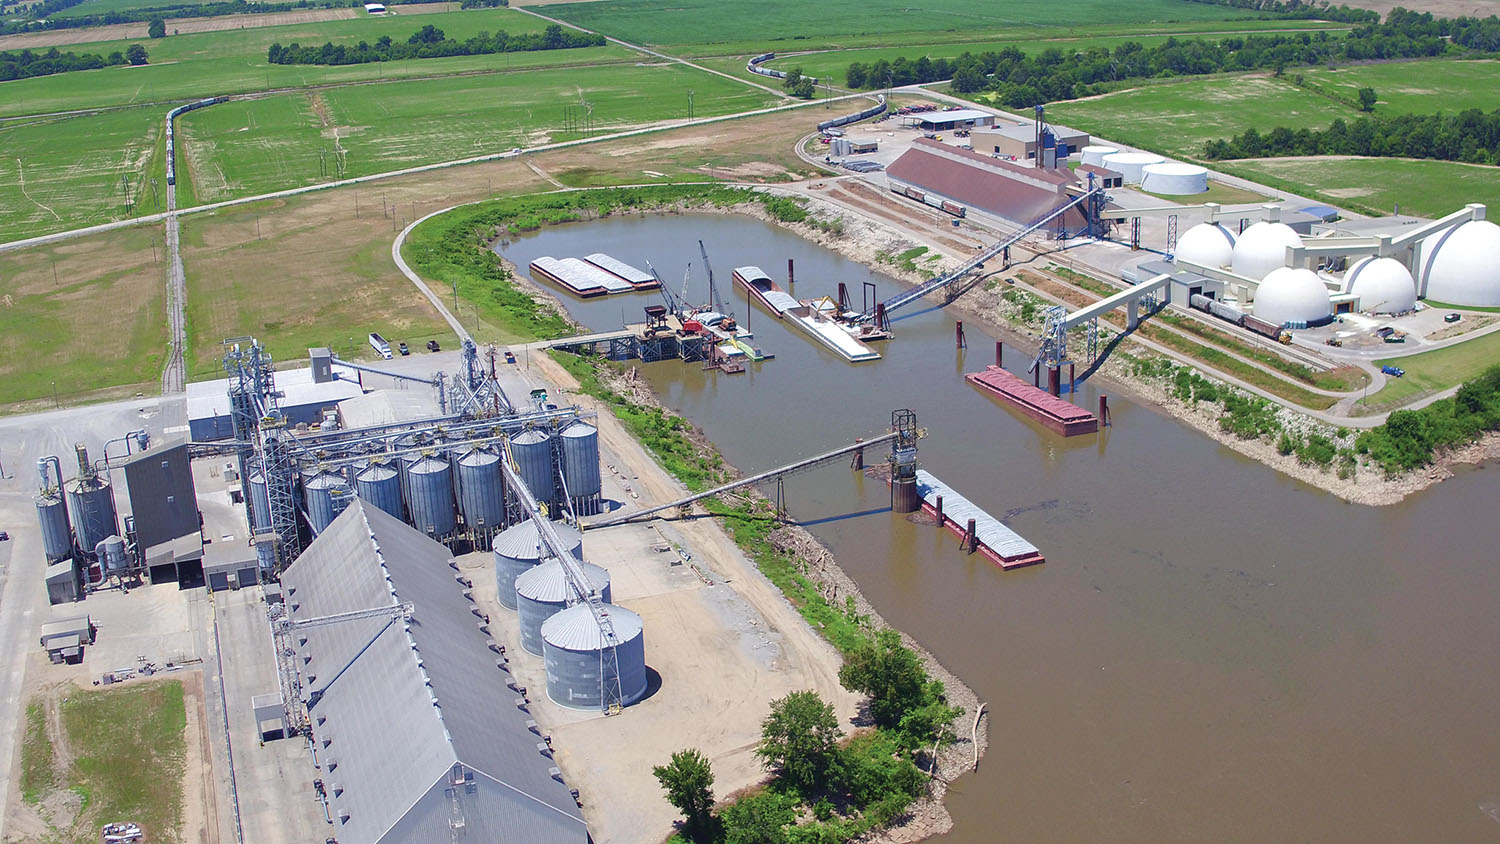 Aerial view of the New Madrid County Port. (Photo courtesy of the New Madrid County Port Authority)